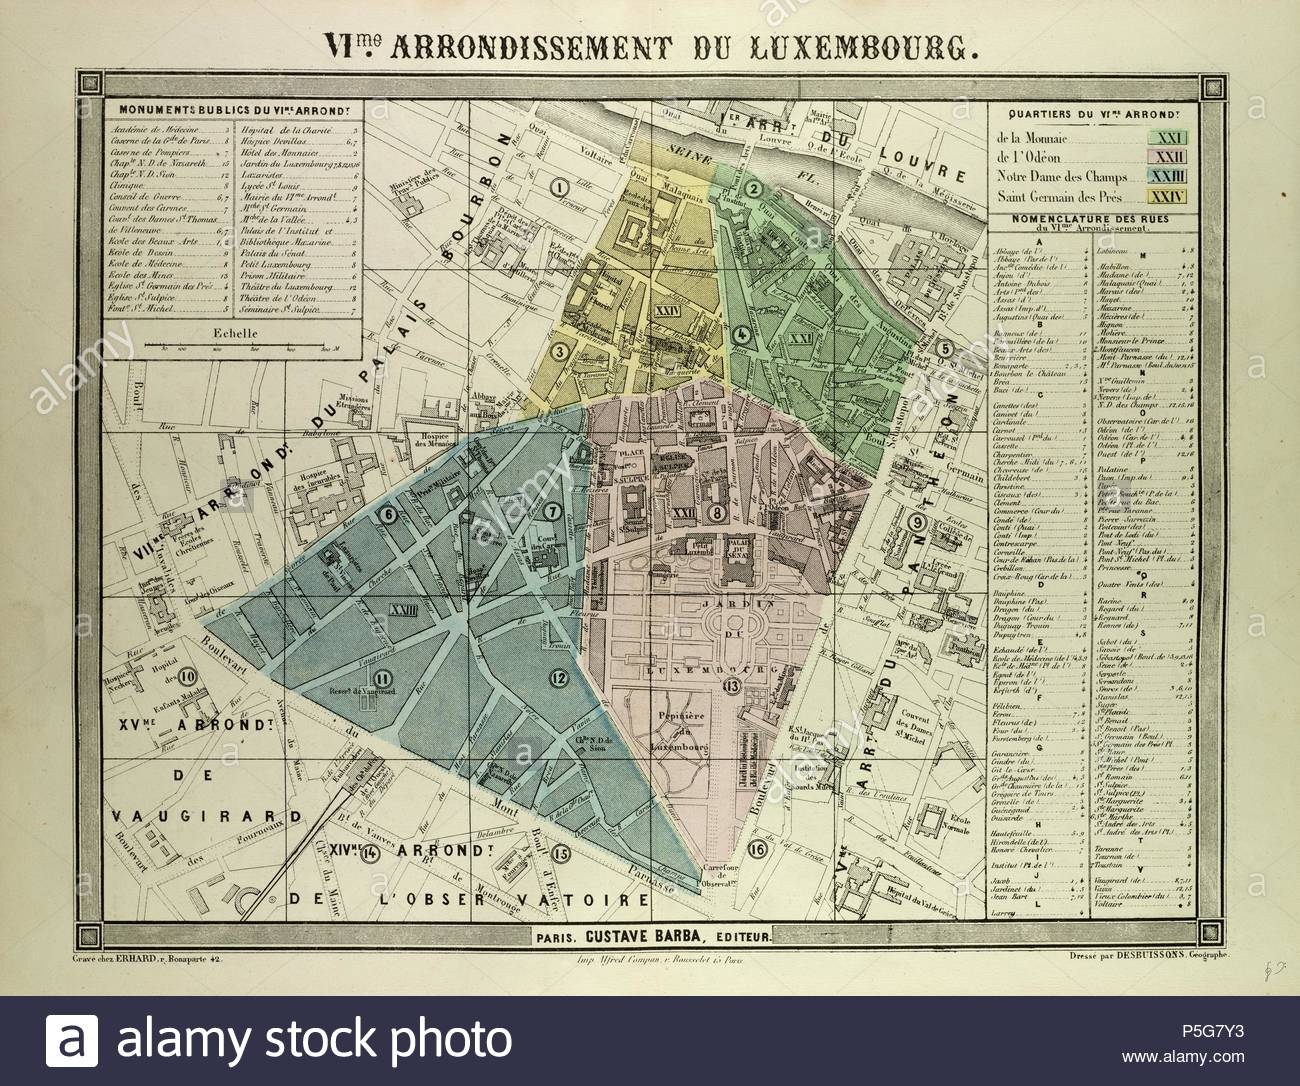 Map Of Paris France 6th Arrondissement.Map Of The 6th Arrondissement Du Luxembourg Paris France Stock